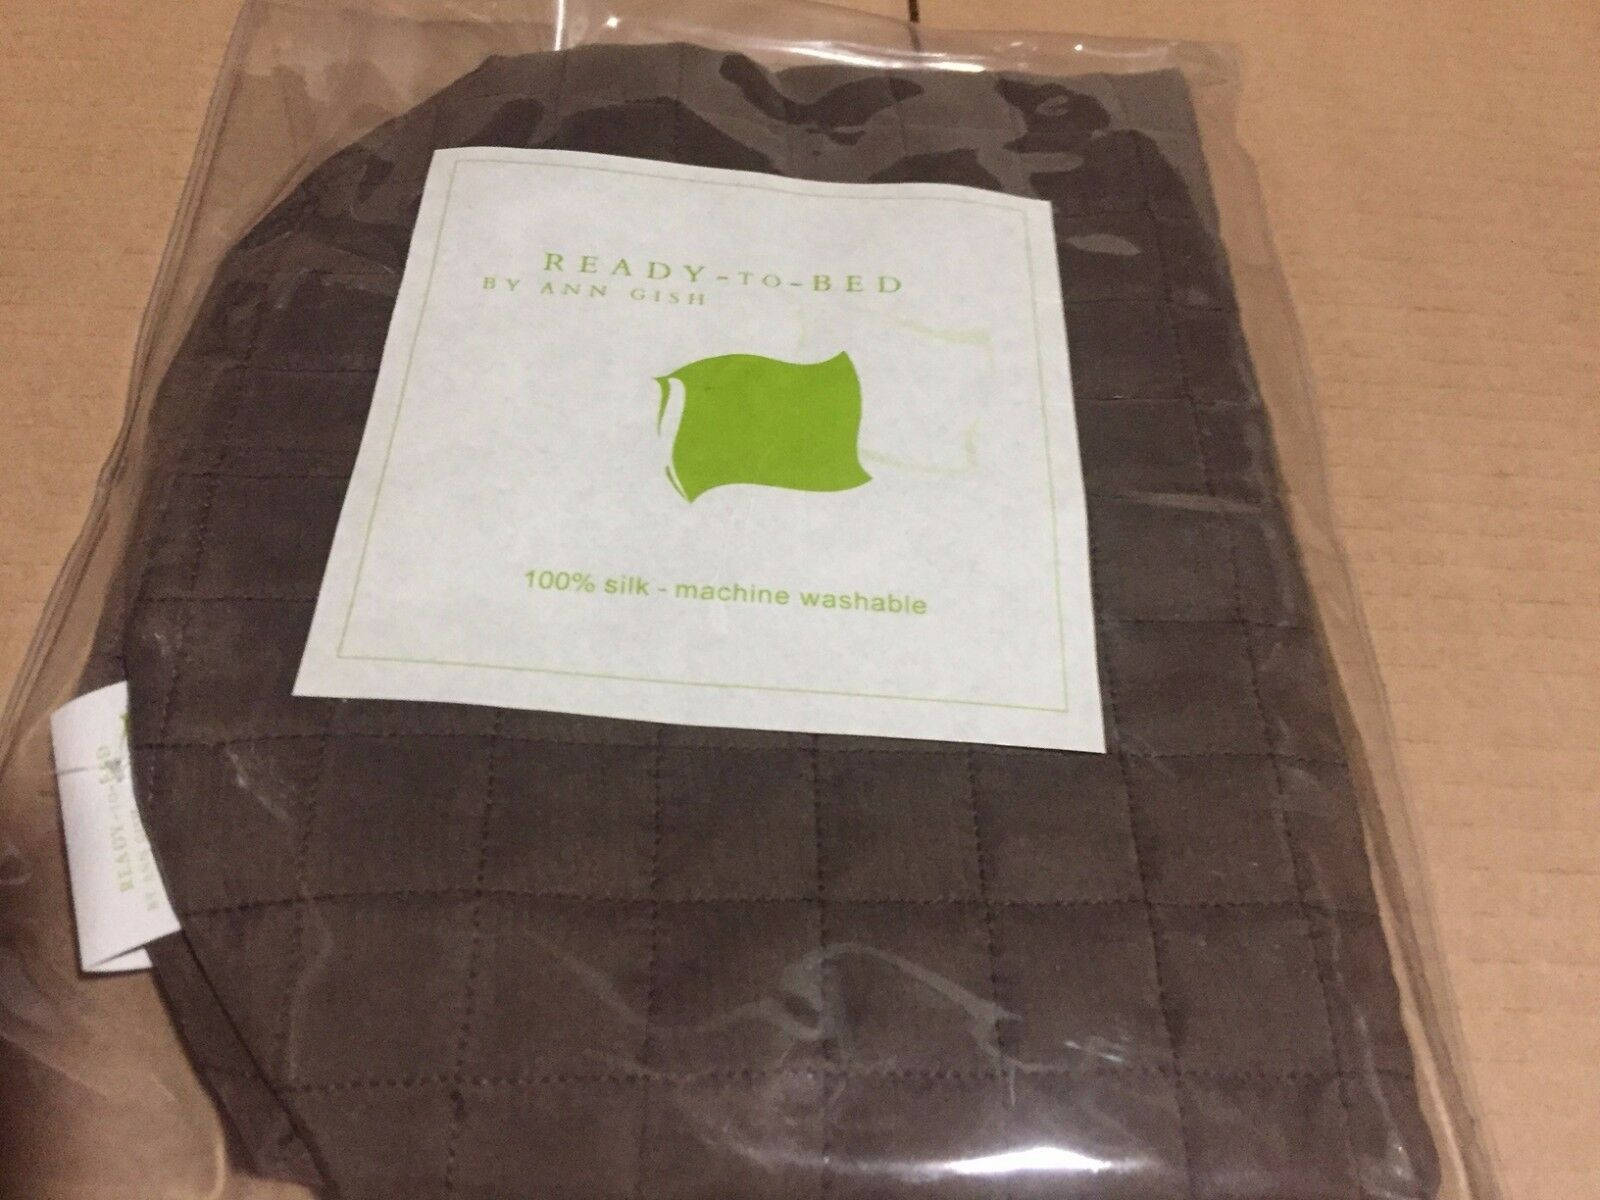 NWT Ann Gish Ready-to-Bed Chocolate 100% SILK Quilted Neckroll Bolster $100 WOW!